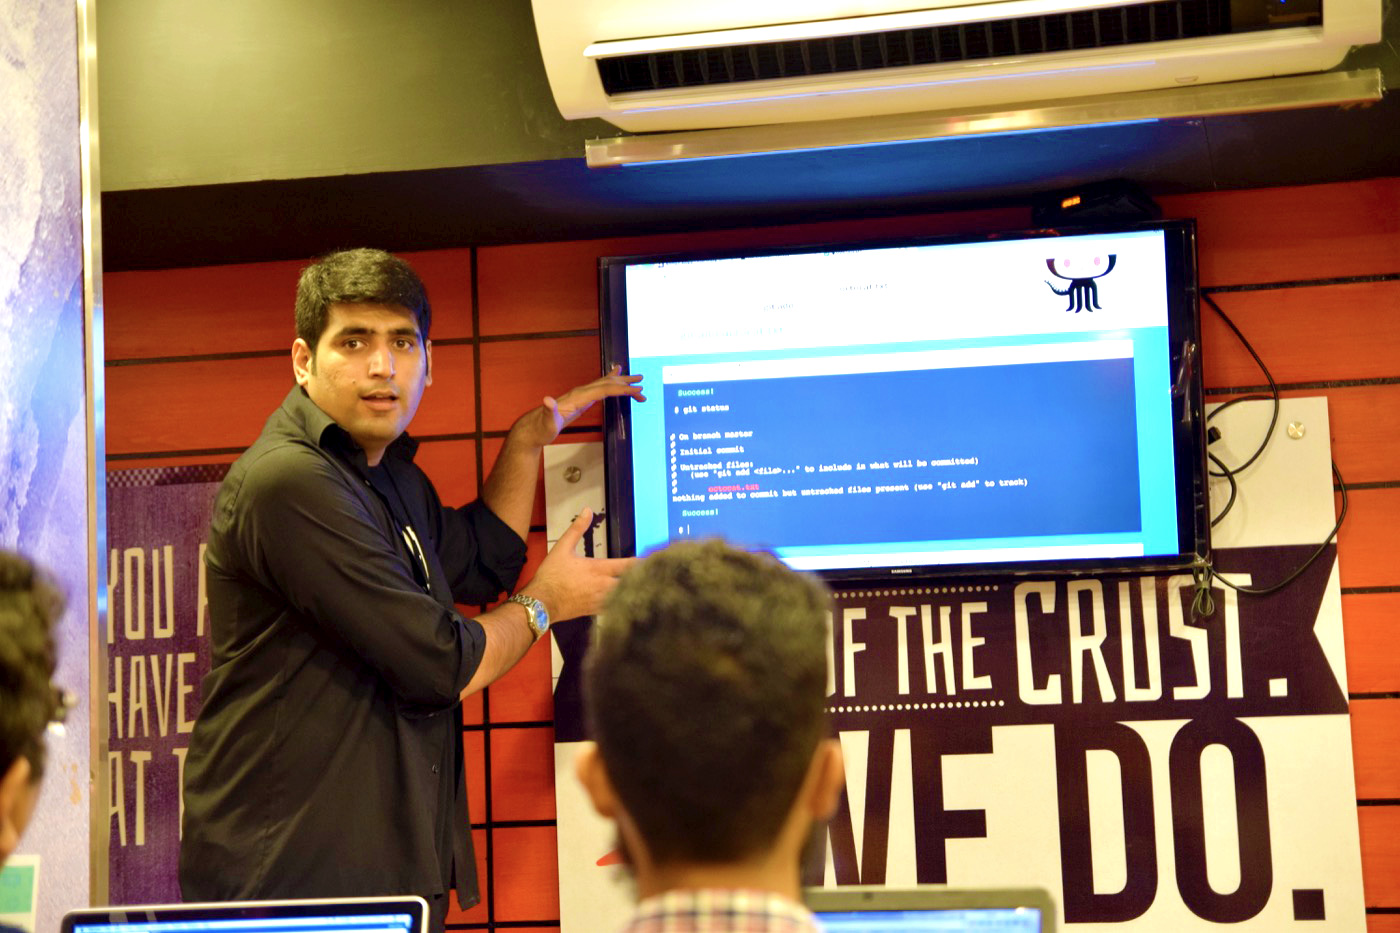 Ahmad Awais talking on Hacktoberfest Event